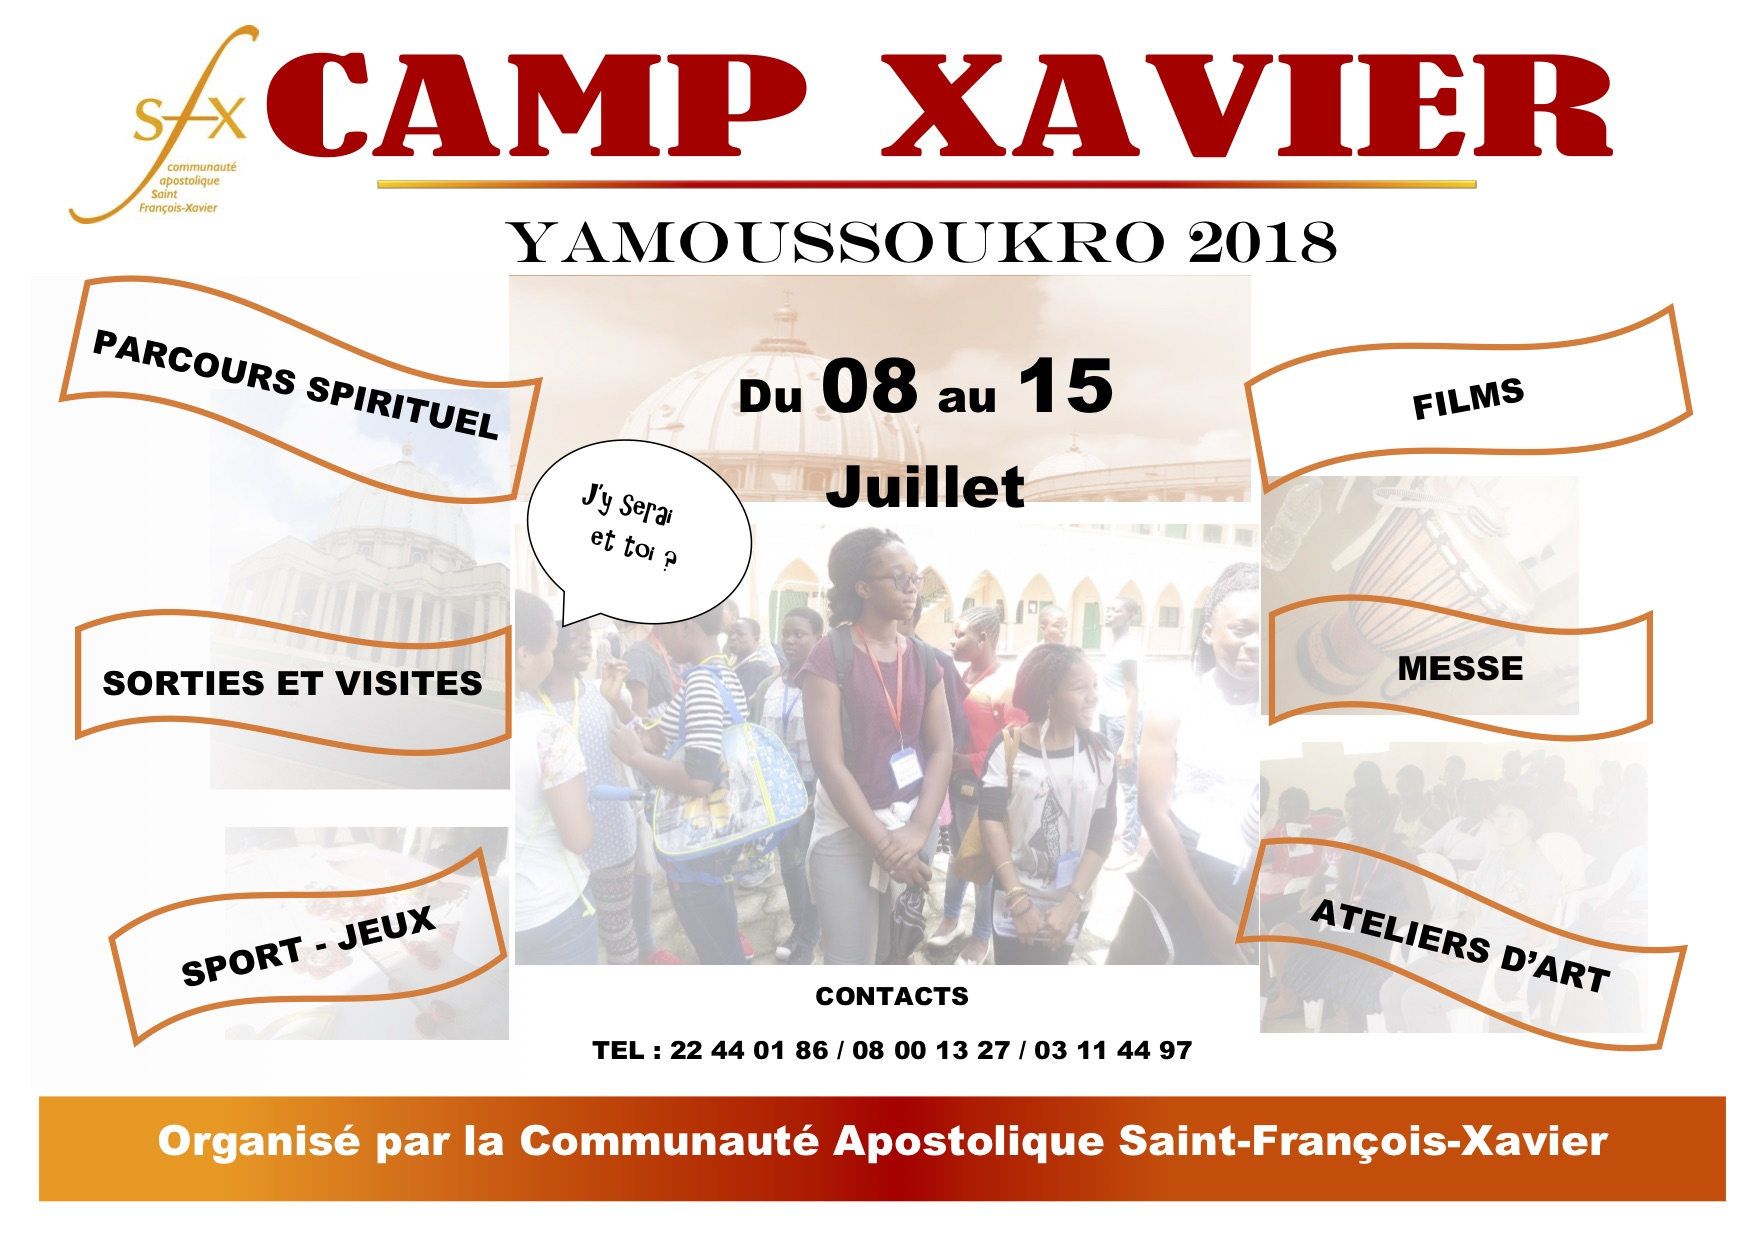 Camp xavier Abd 2018